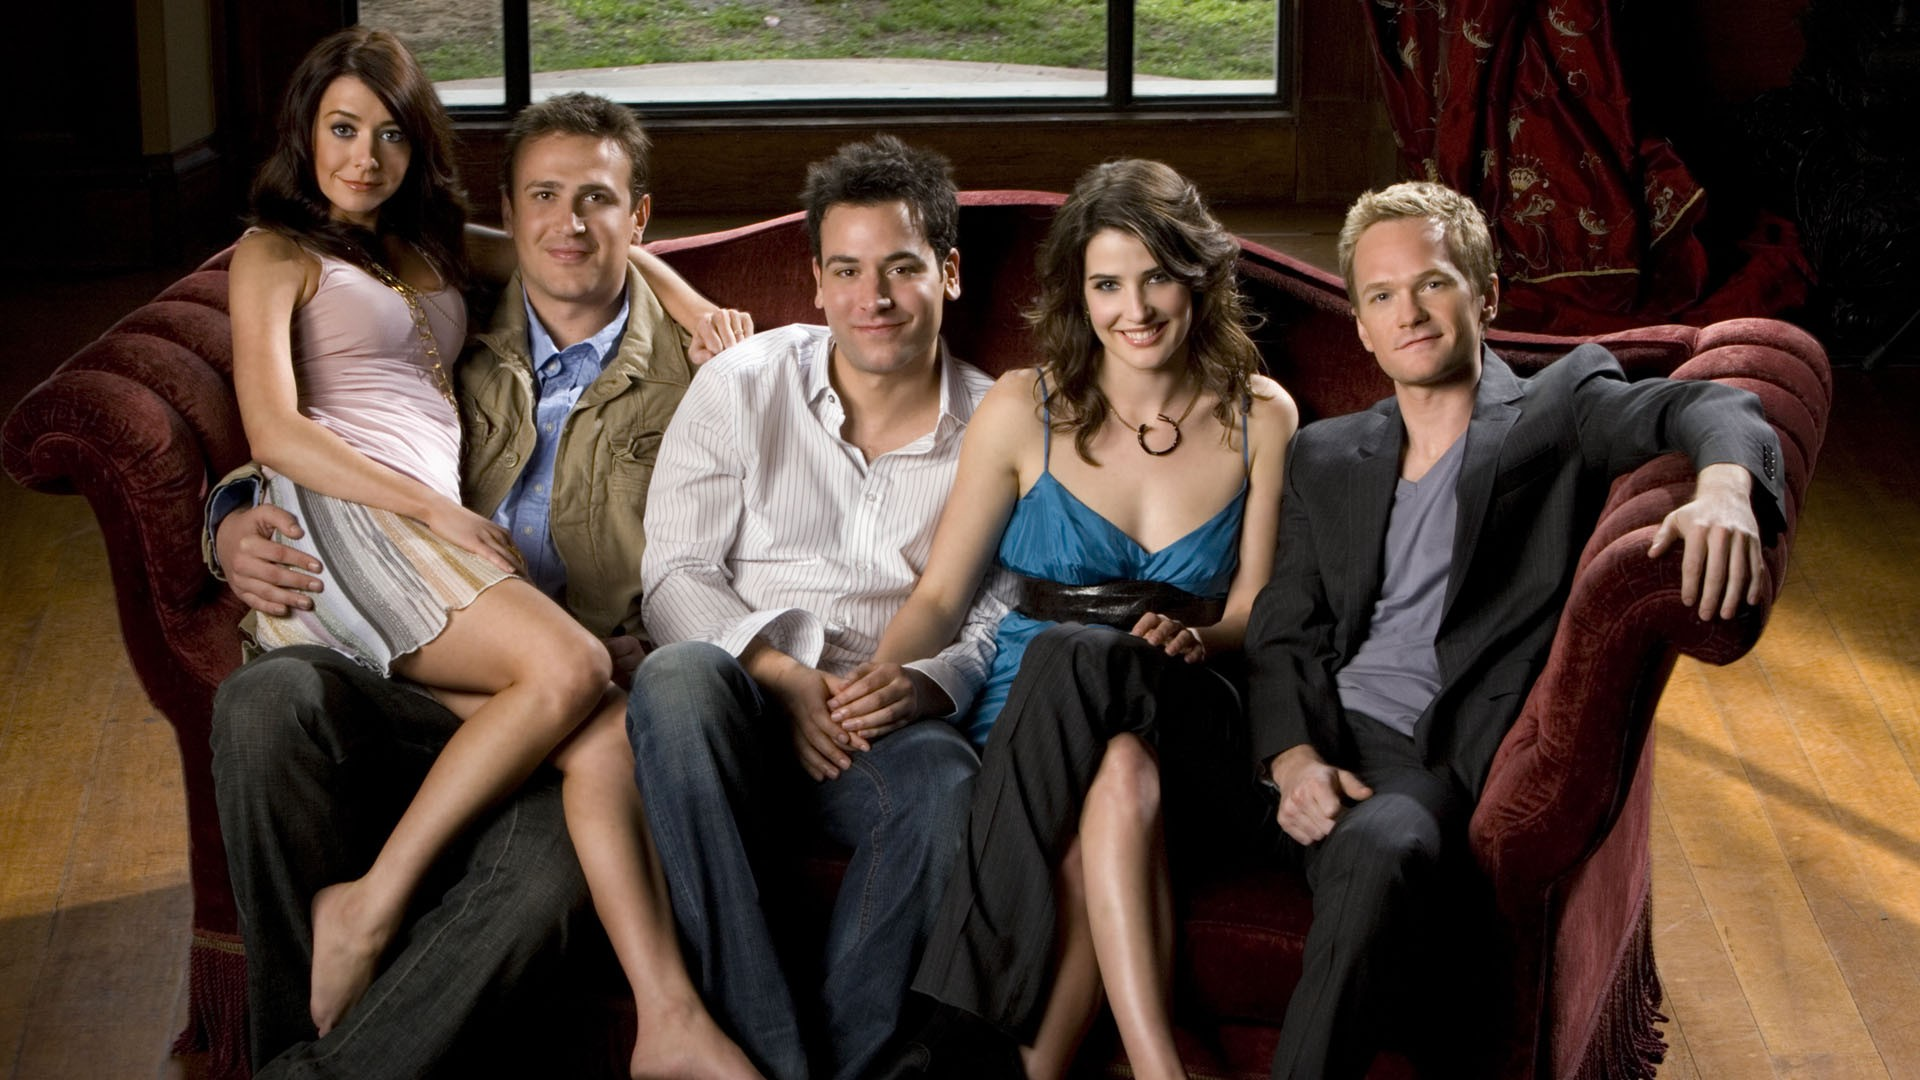 Cobie Smulders In How I Met Your Mother 2